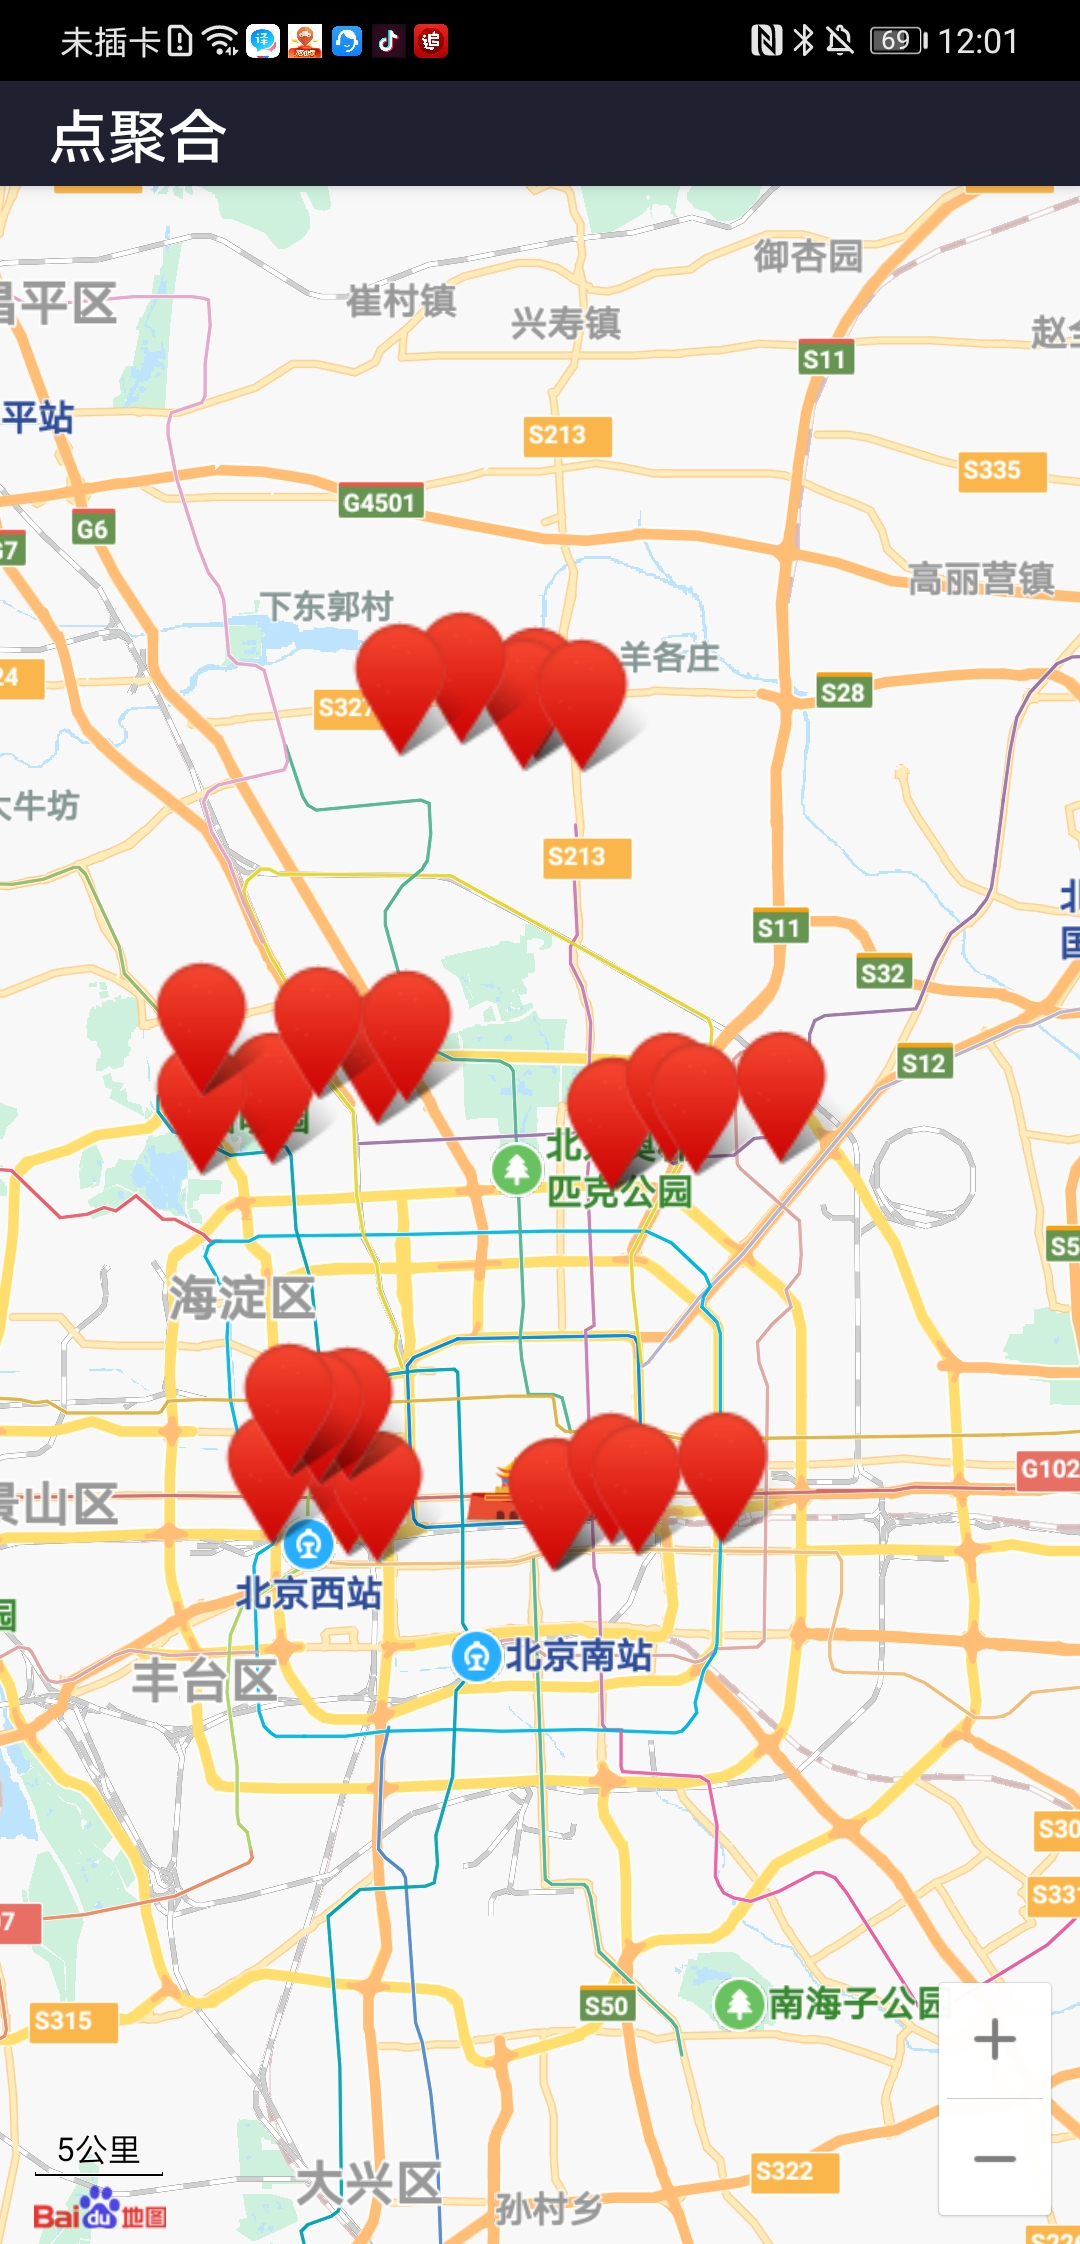 Screenshot_20200610_120159_com.baidu.mapsdkexample.jpg